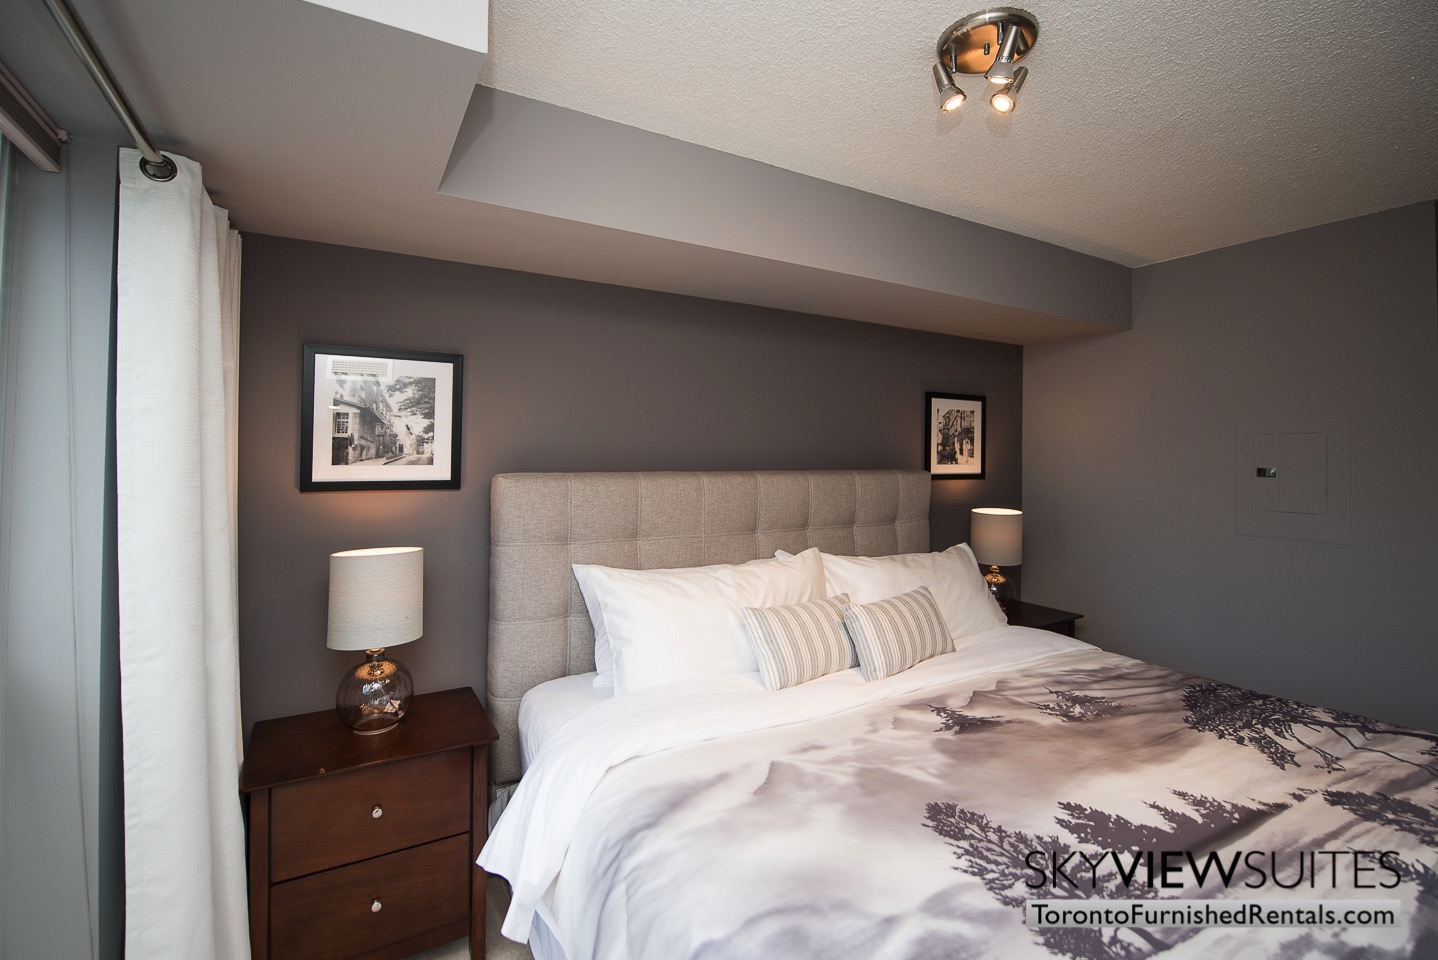 Adelaide & Sherbourne executive rentals toronto gray bedroom wall